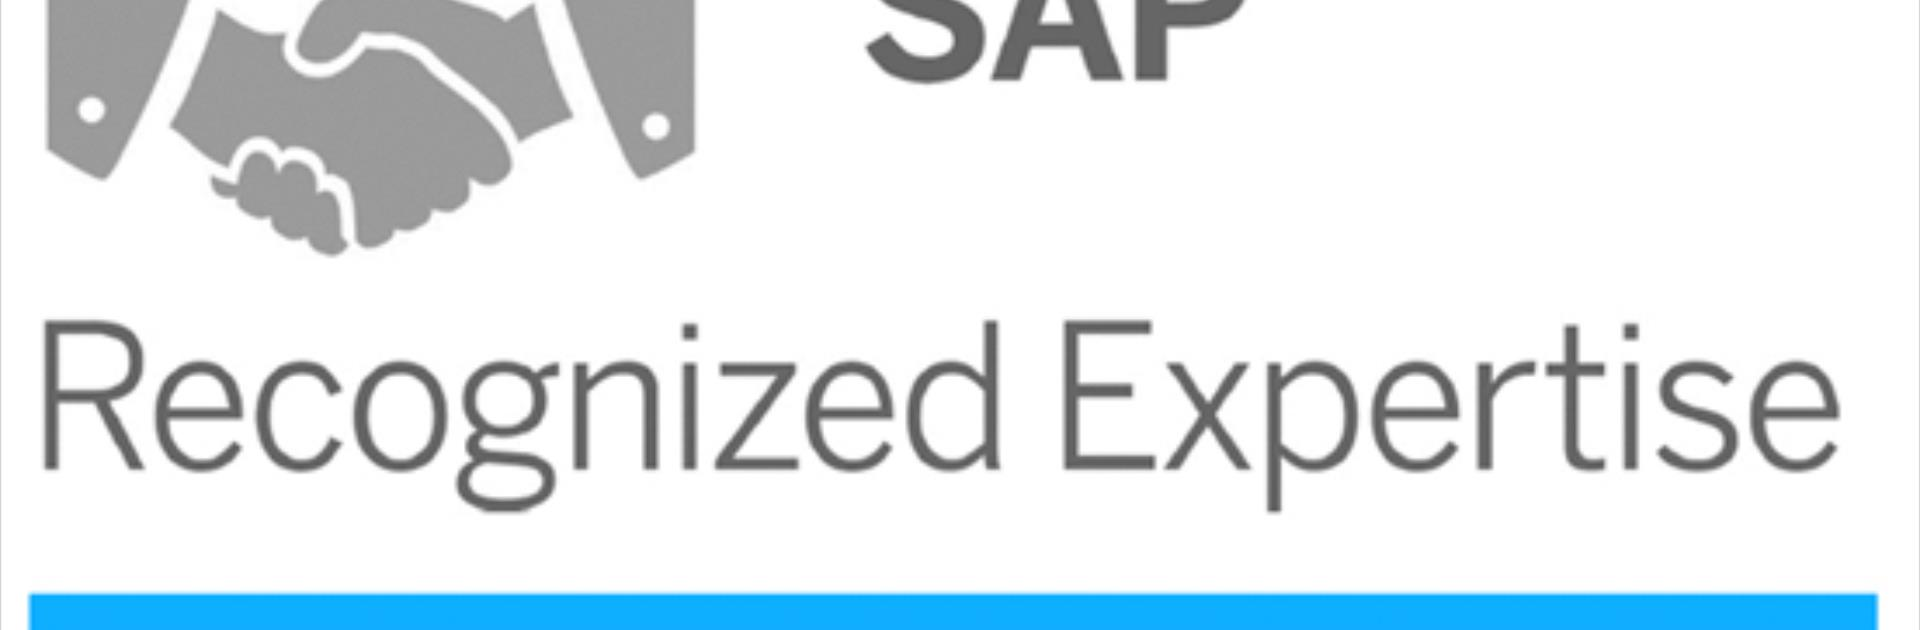 Our SAP Recognized Expertise Certificates